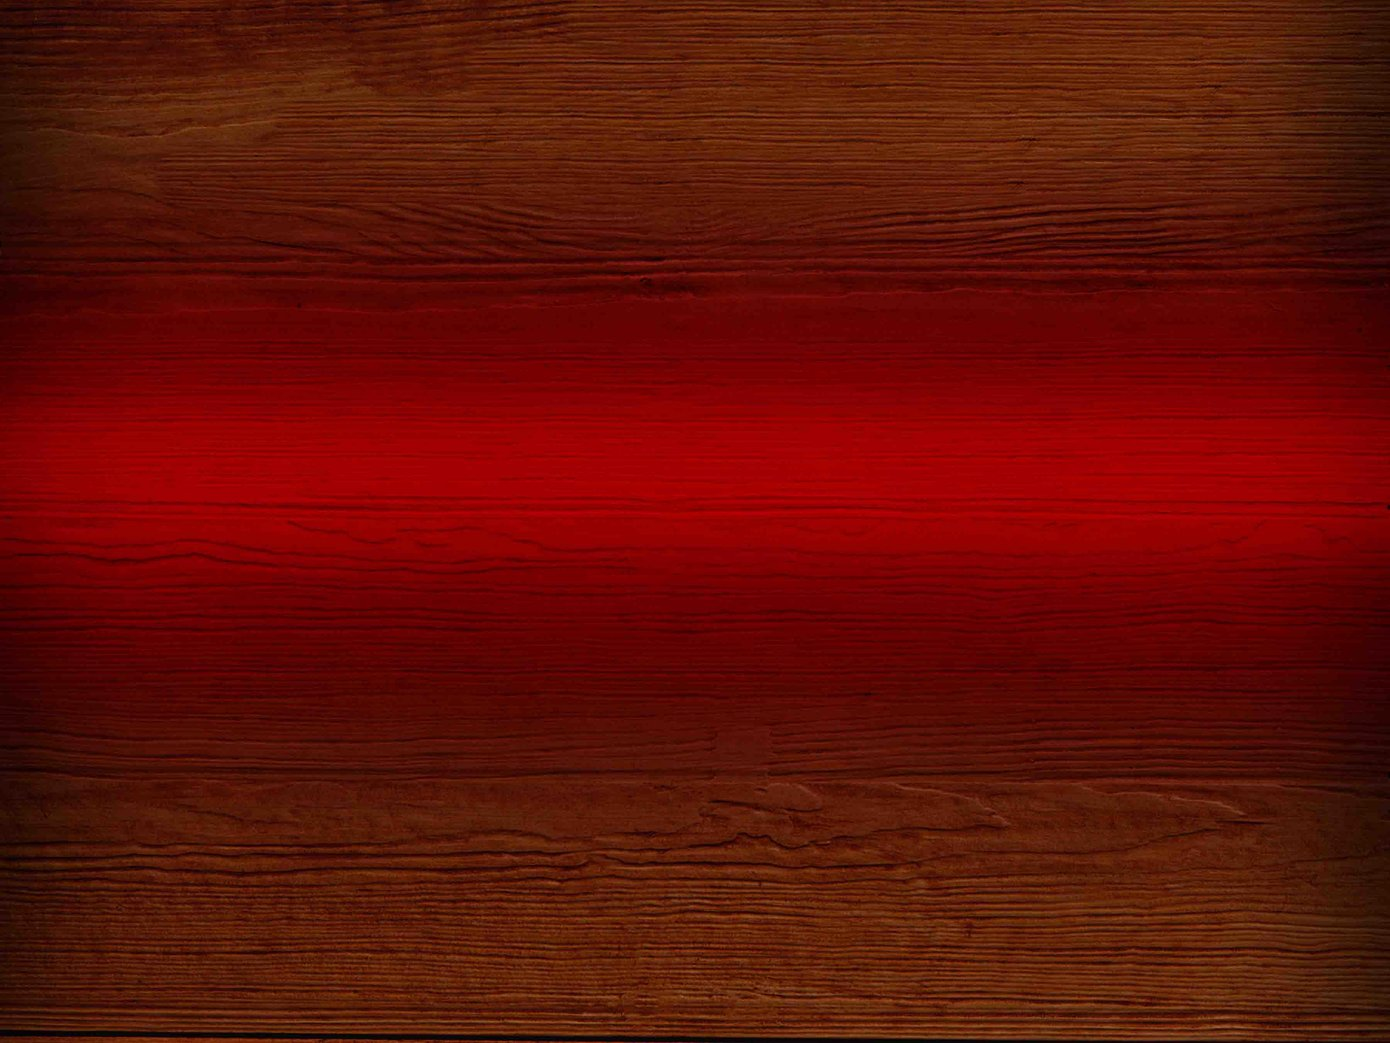 Wood background with red hue